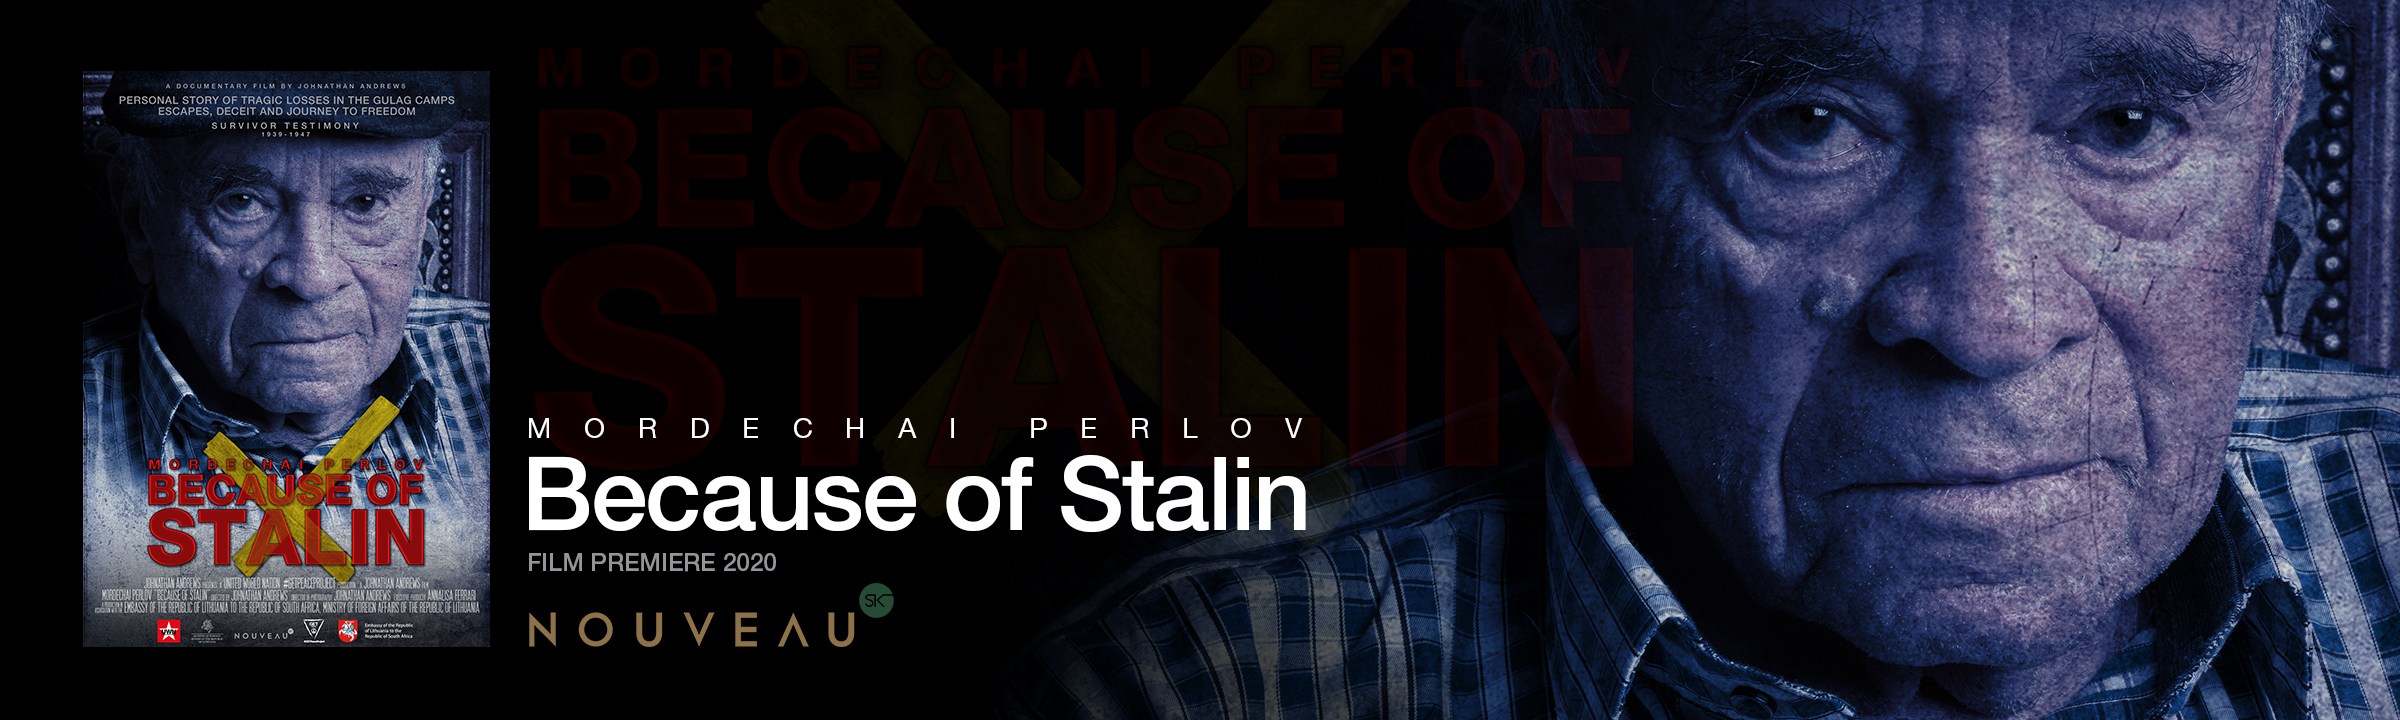 Because of Stalin Film Premiere Banner